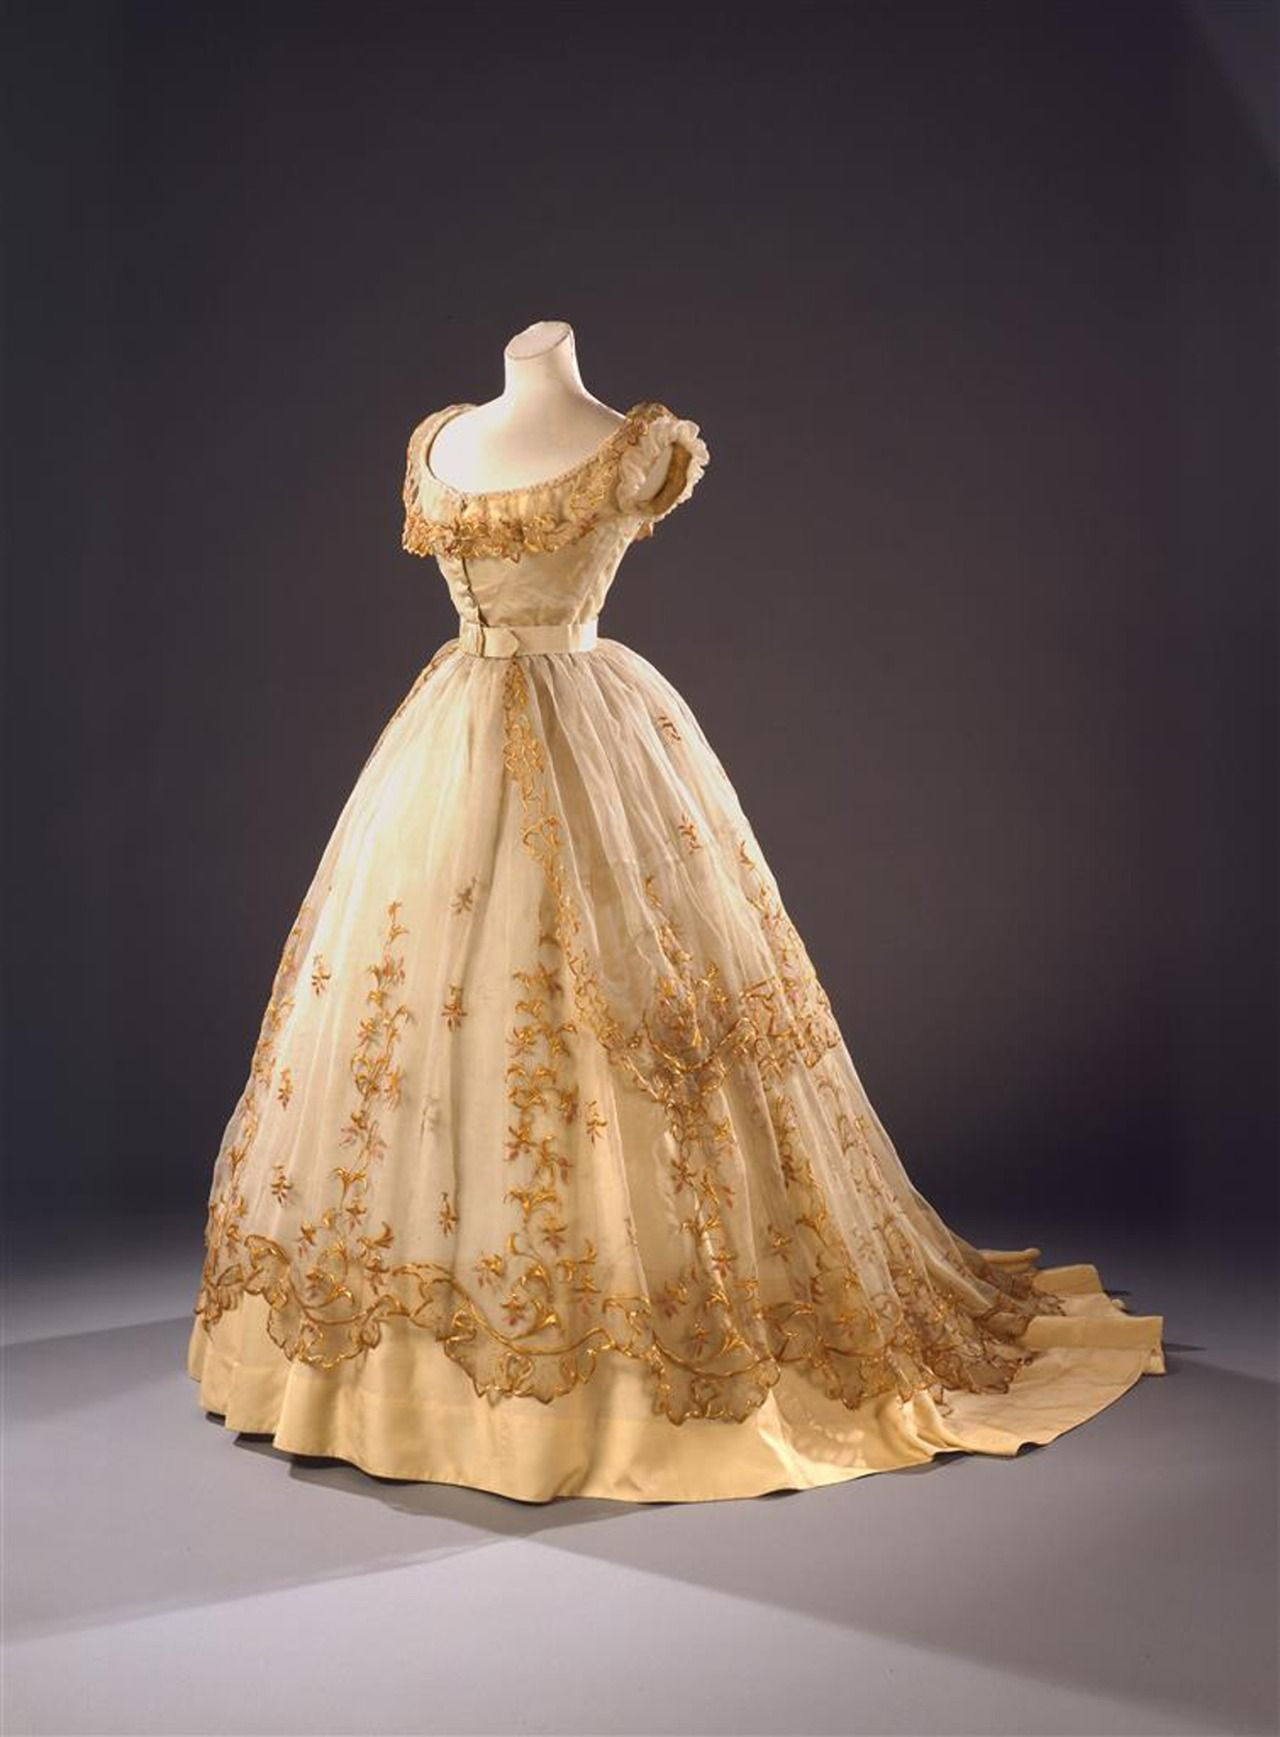 Ball gown wien museum somewhere in time pinterest ball